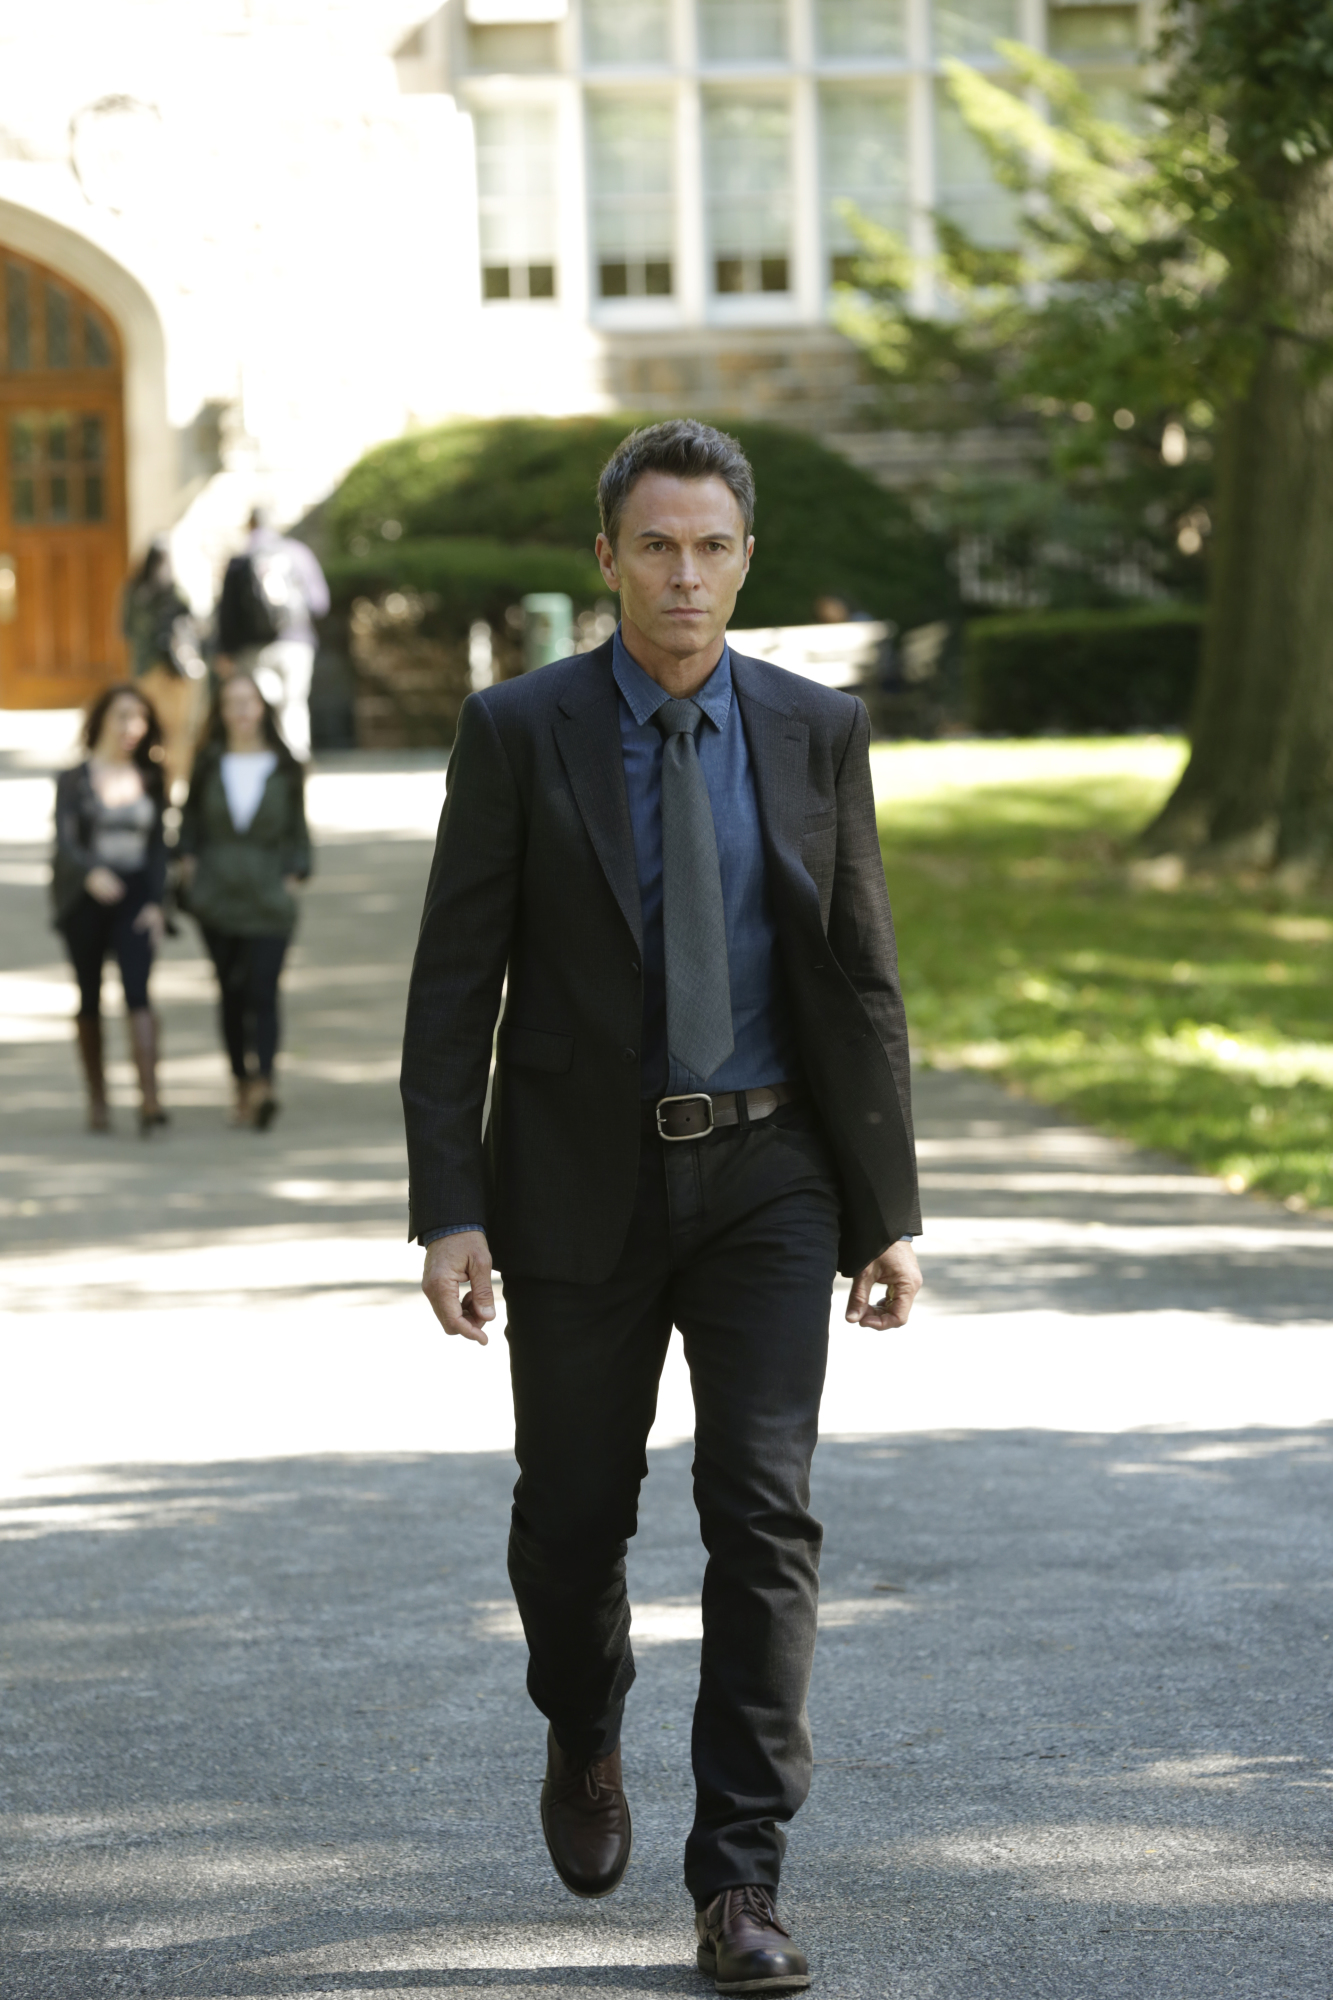 29. Tim Daly produced